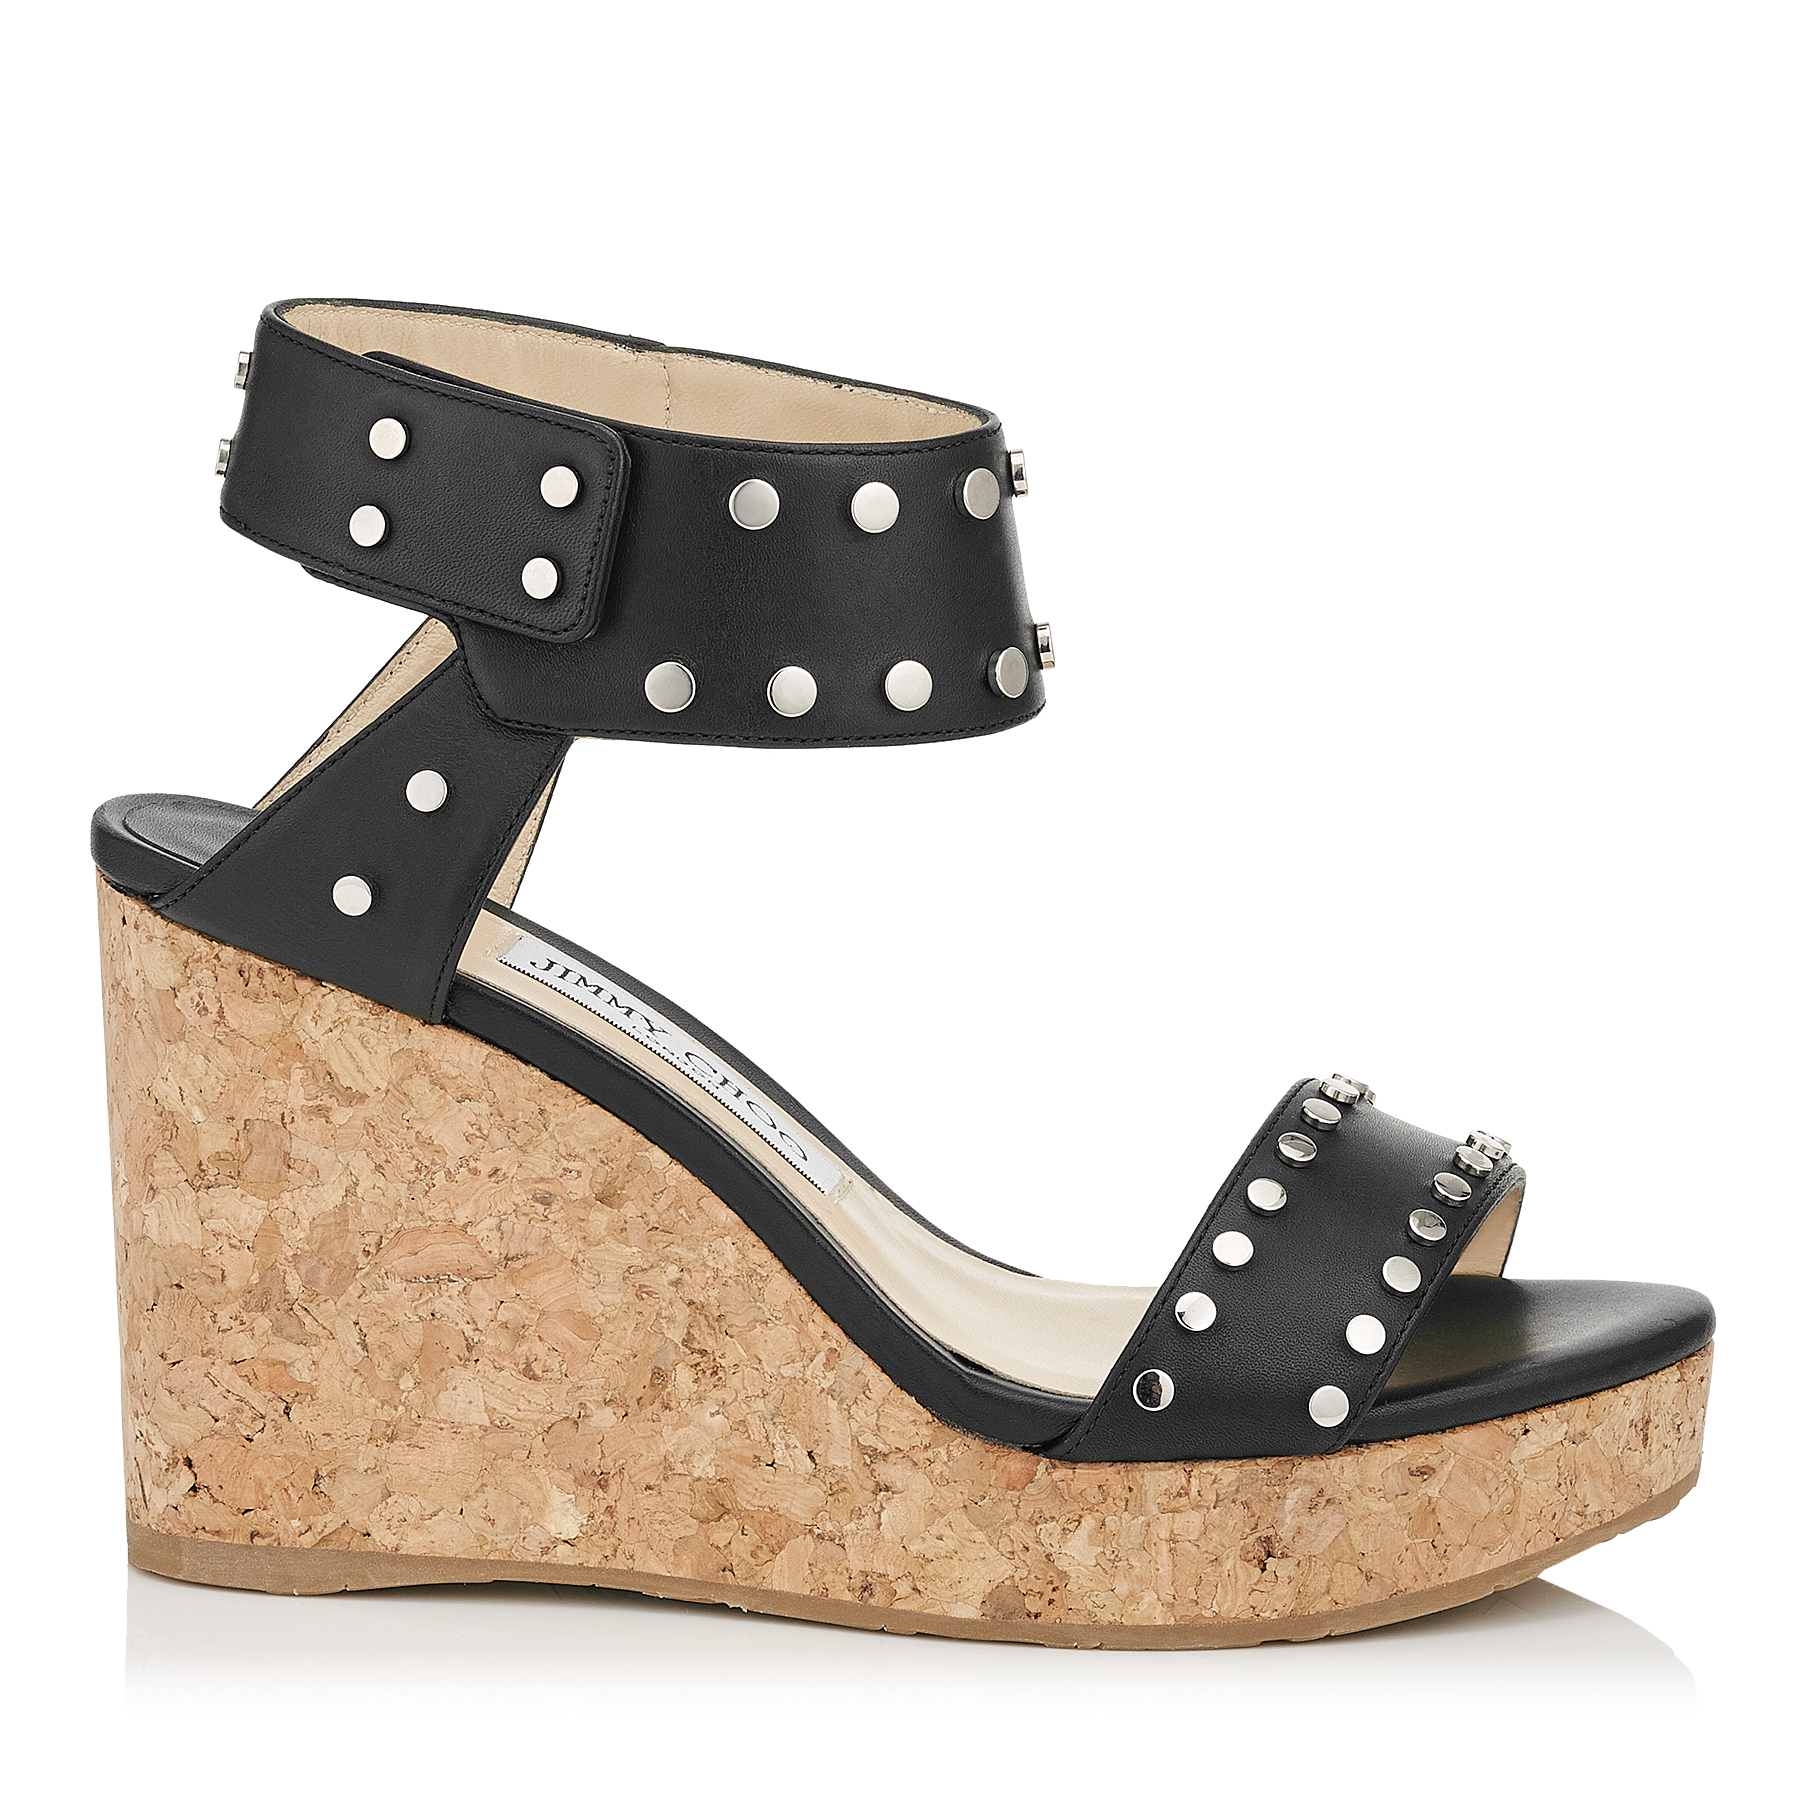 NELLY 100 Black Shiny Leather Wedges with Silver Studs by Jimmy Choo